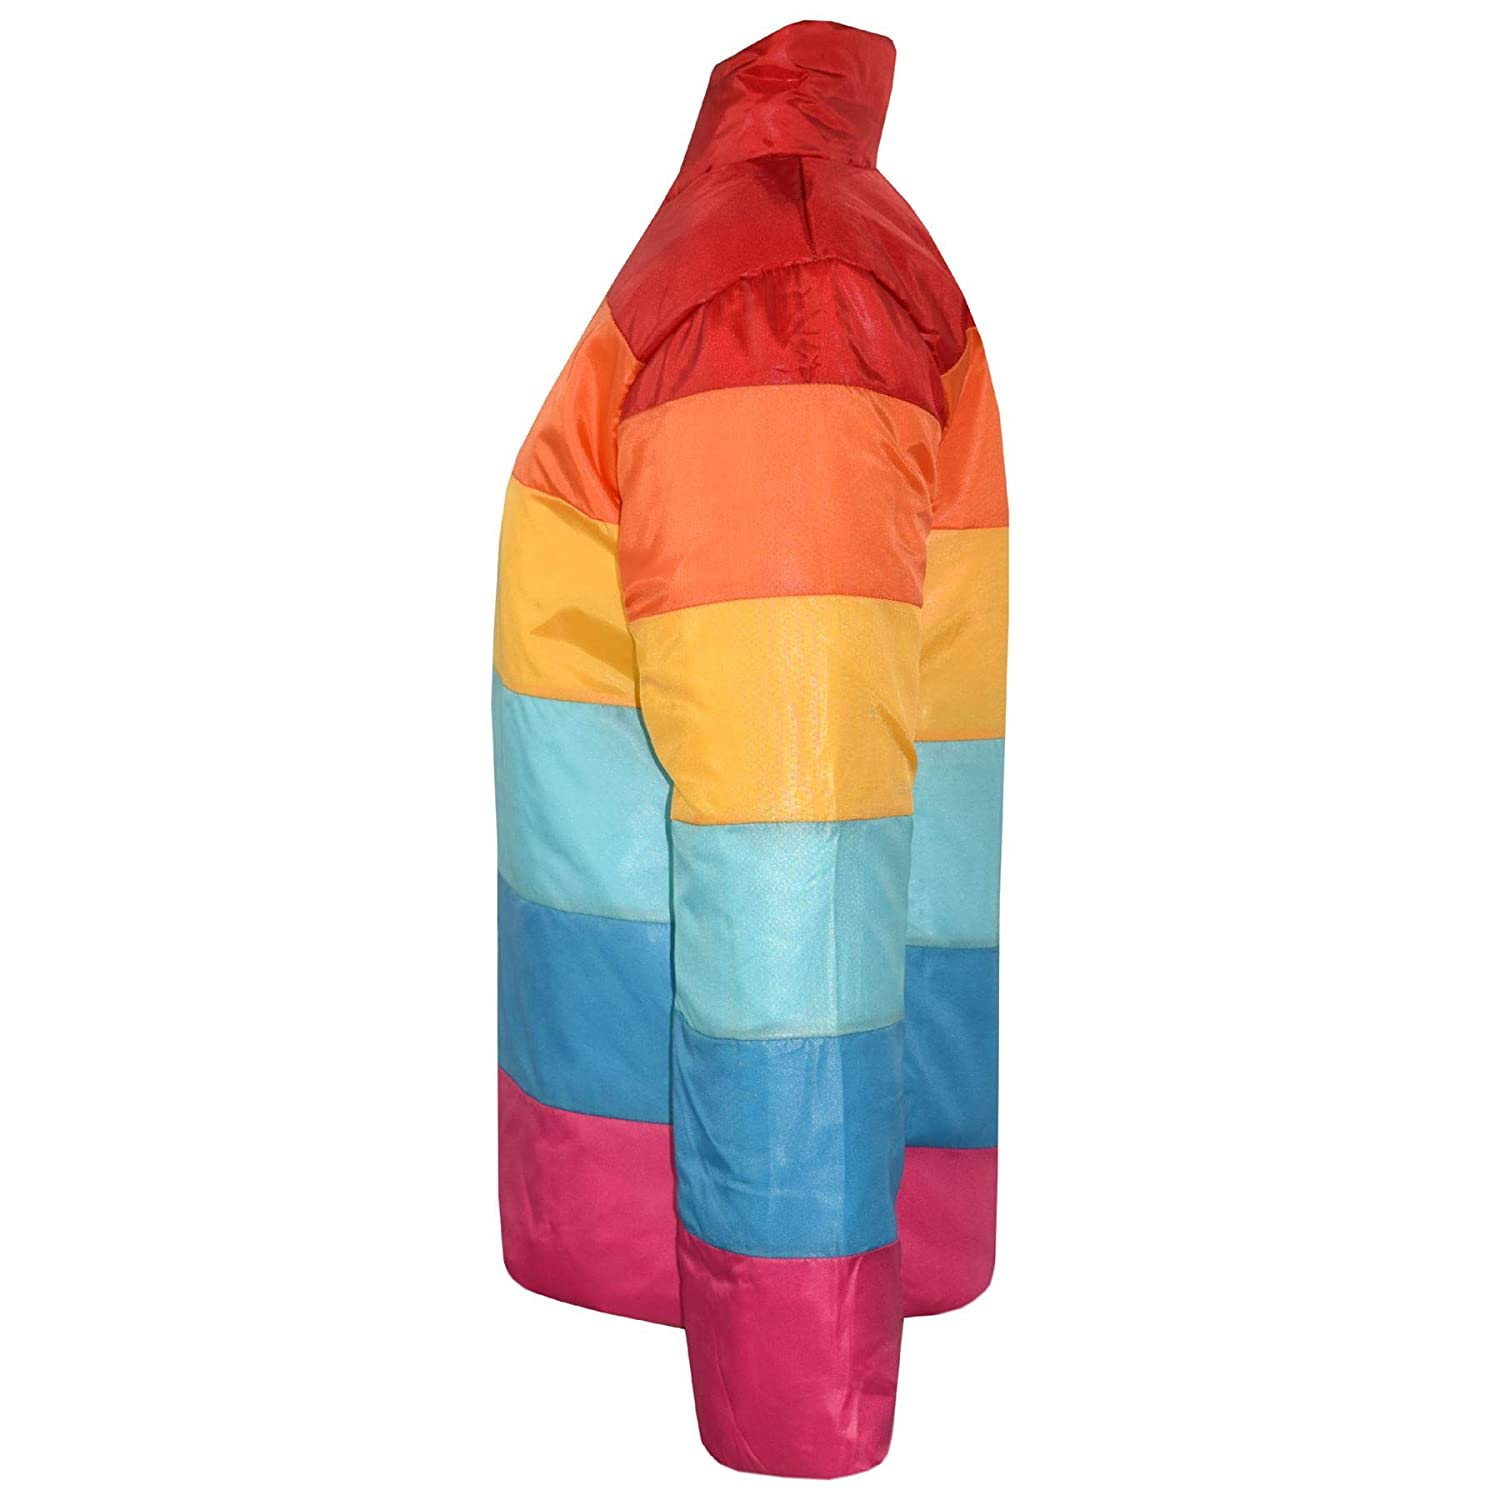 Kids Girls Jackets Rainbow Padded Multi Color Block Puffer Jacket Coats 7-13 Yrs